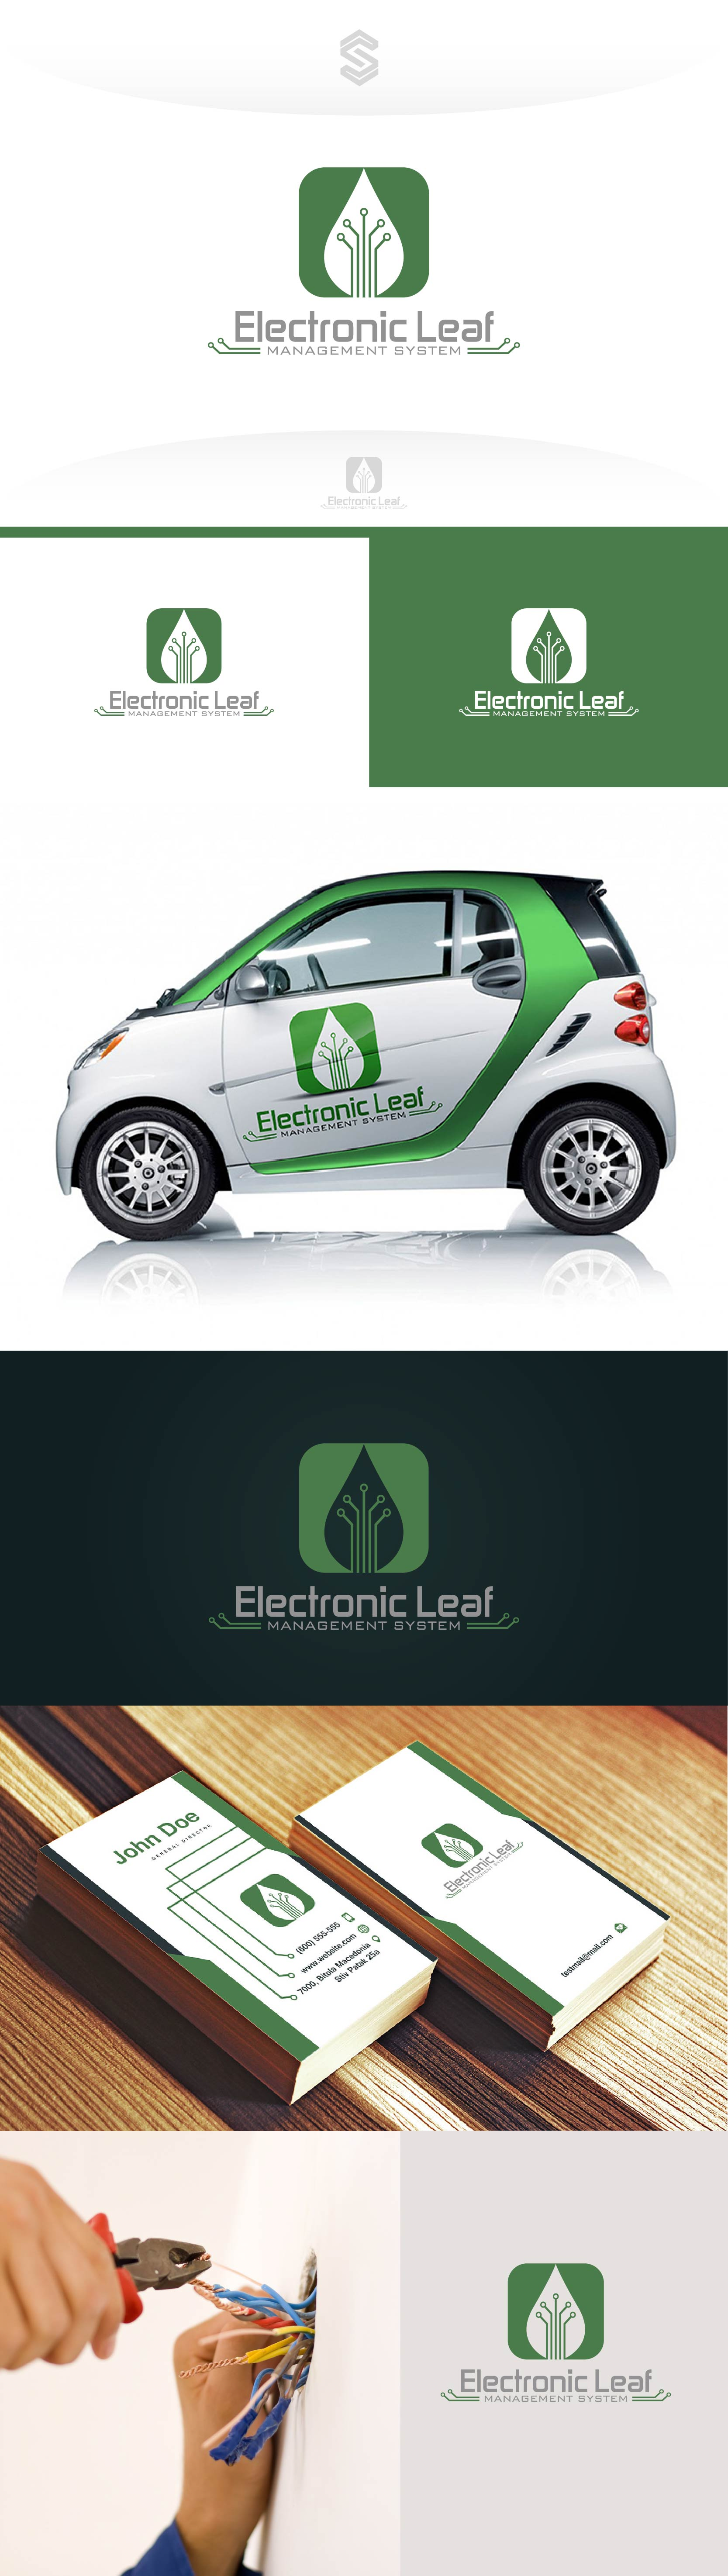 Logo For Electronic Management Systems Company This Modern And Circuit Design Creative Combines Circuits Leaf In One Awesome Combination